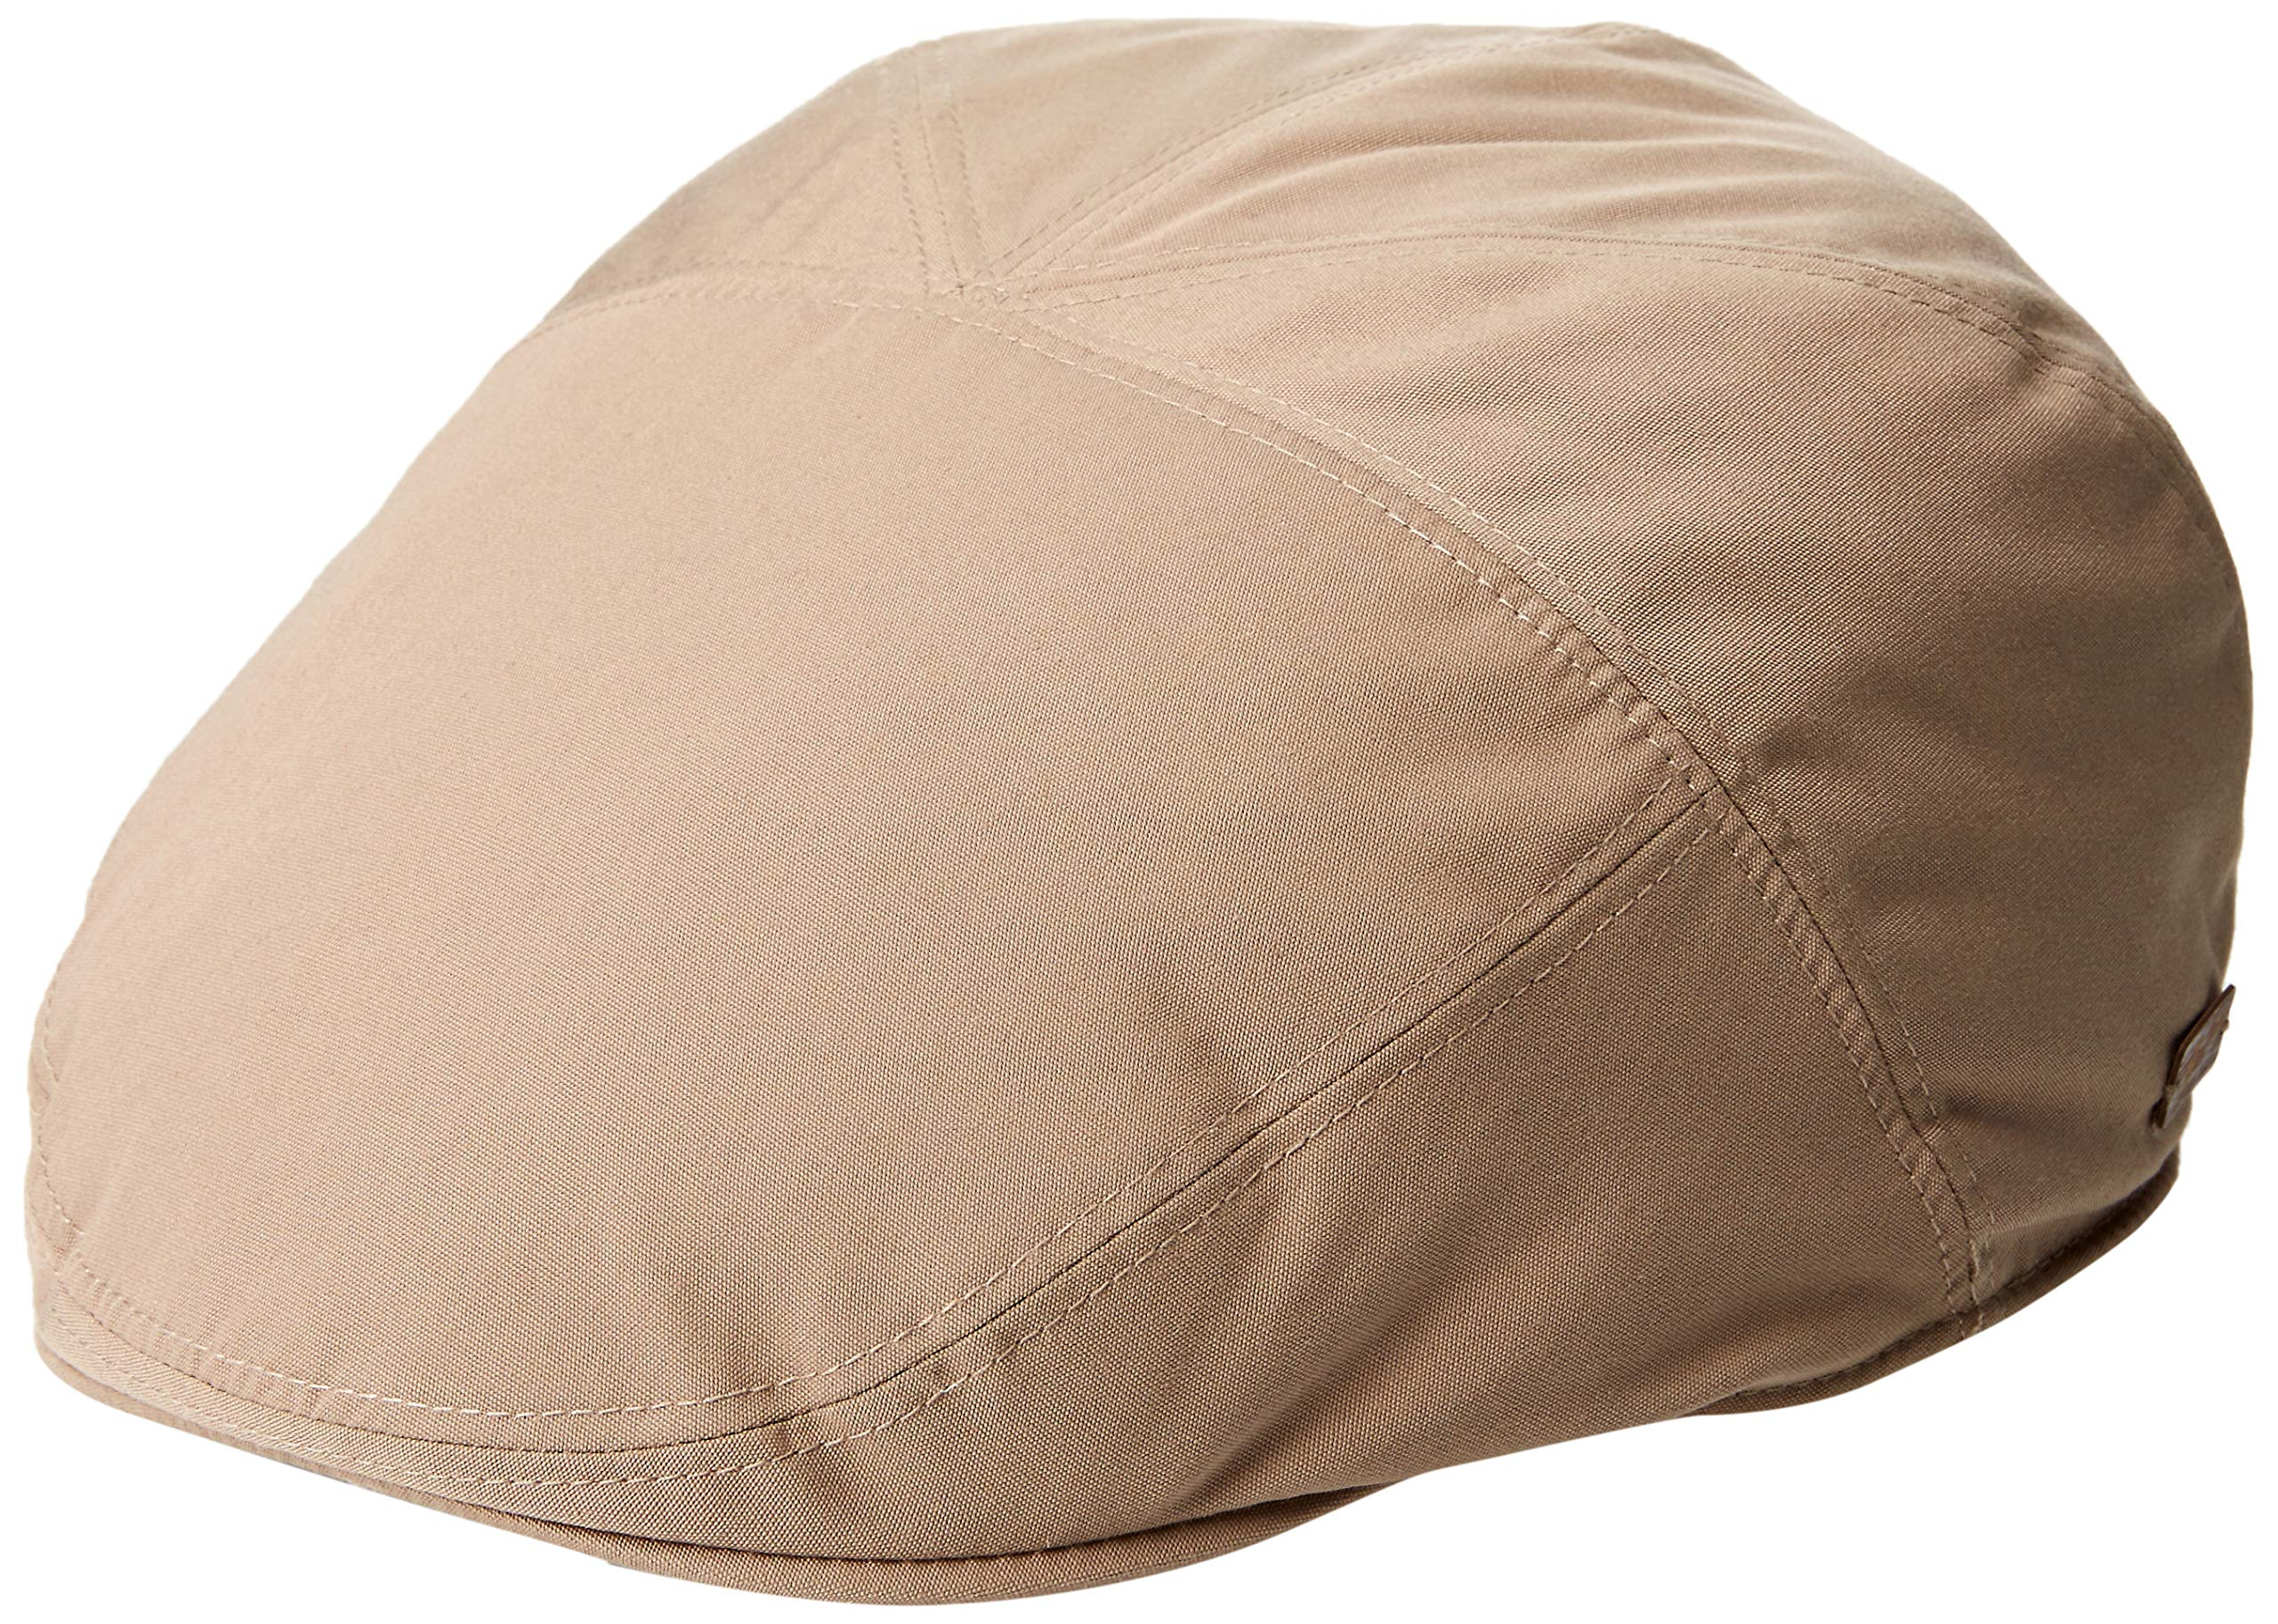 Hollywood Casquette Bailey Of Mixte 1365 AdulteBruntan58m YbfI76gvym